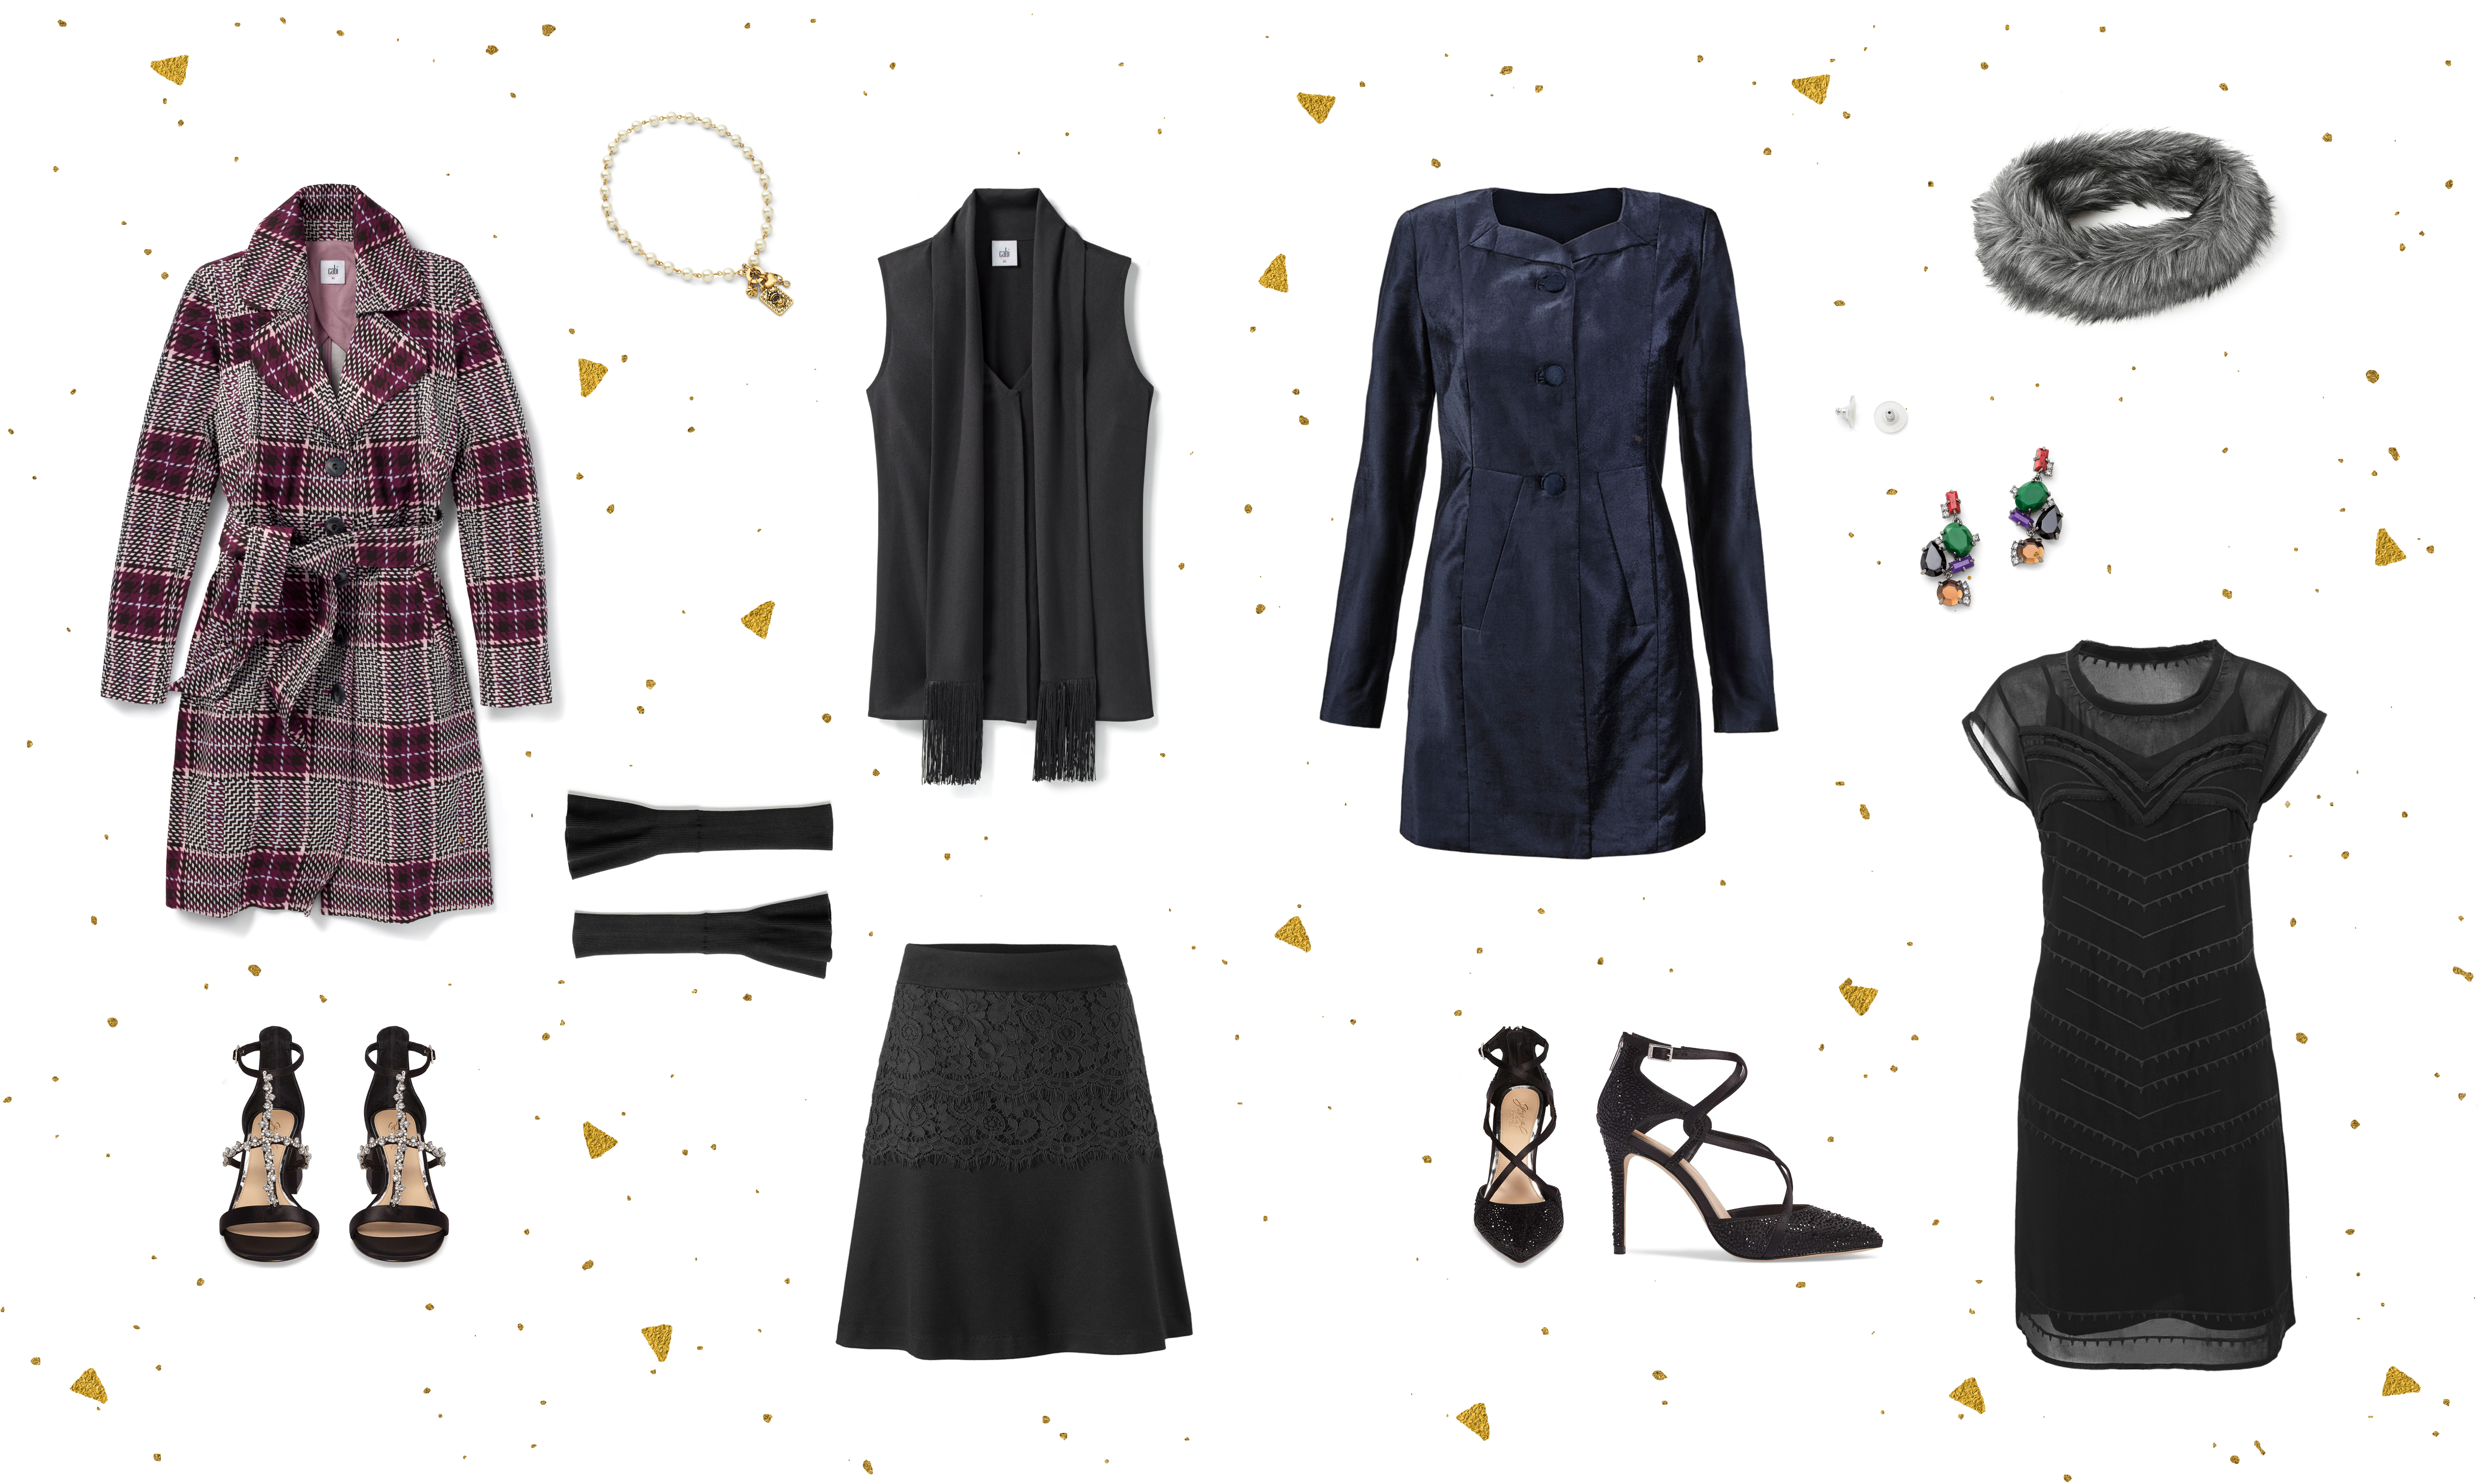 c8f9f370b34e 5 Holiday Party Outfits to Celebrate in Style | cabi Clothing